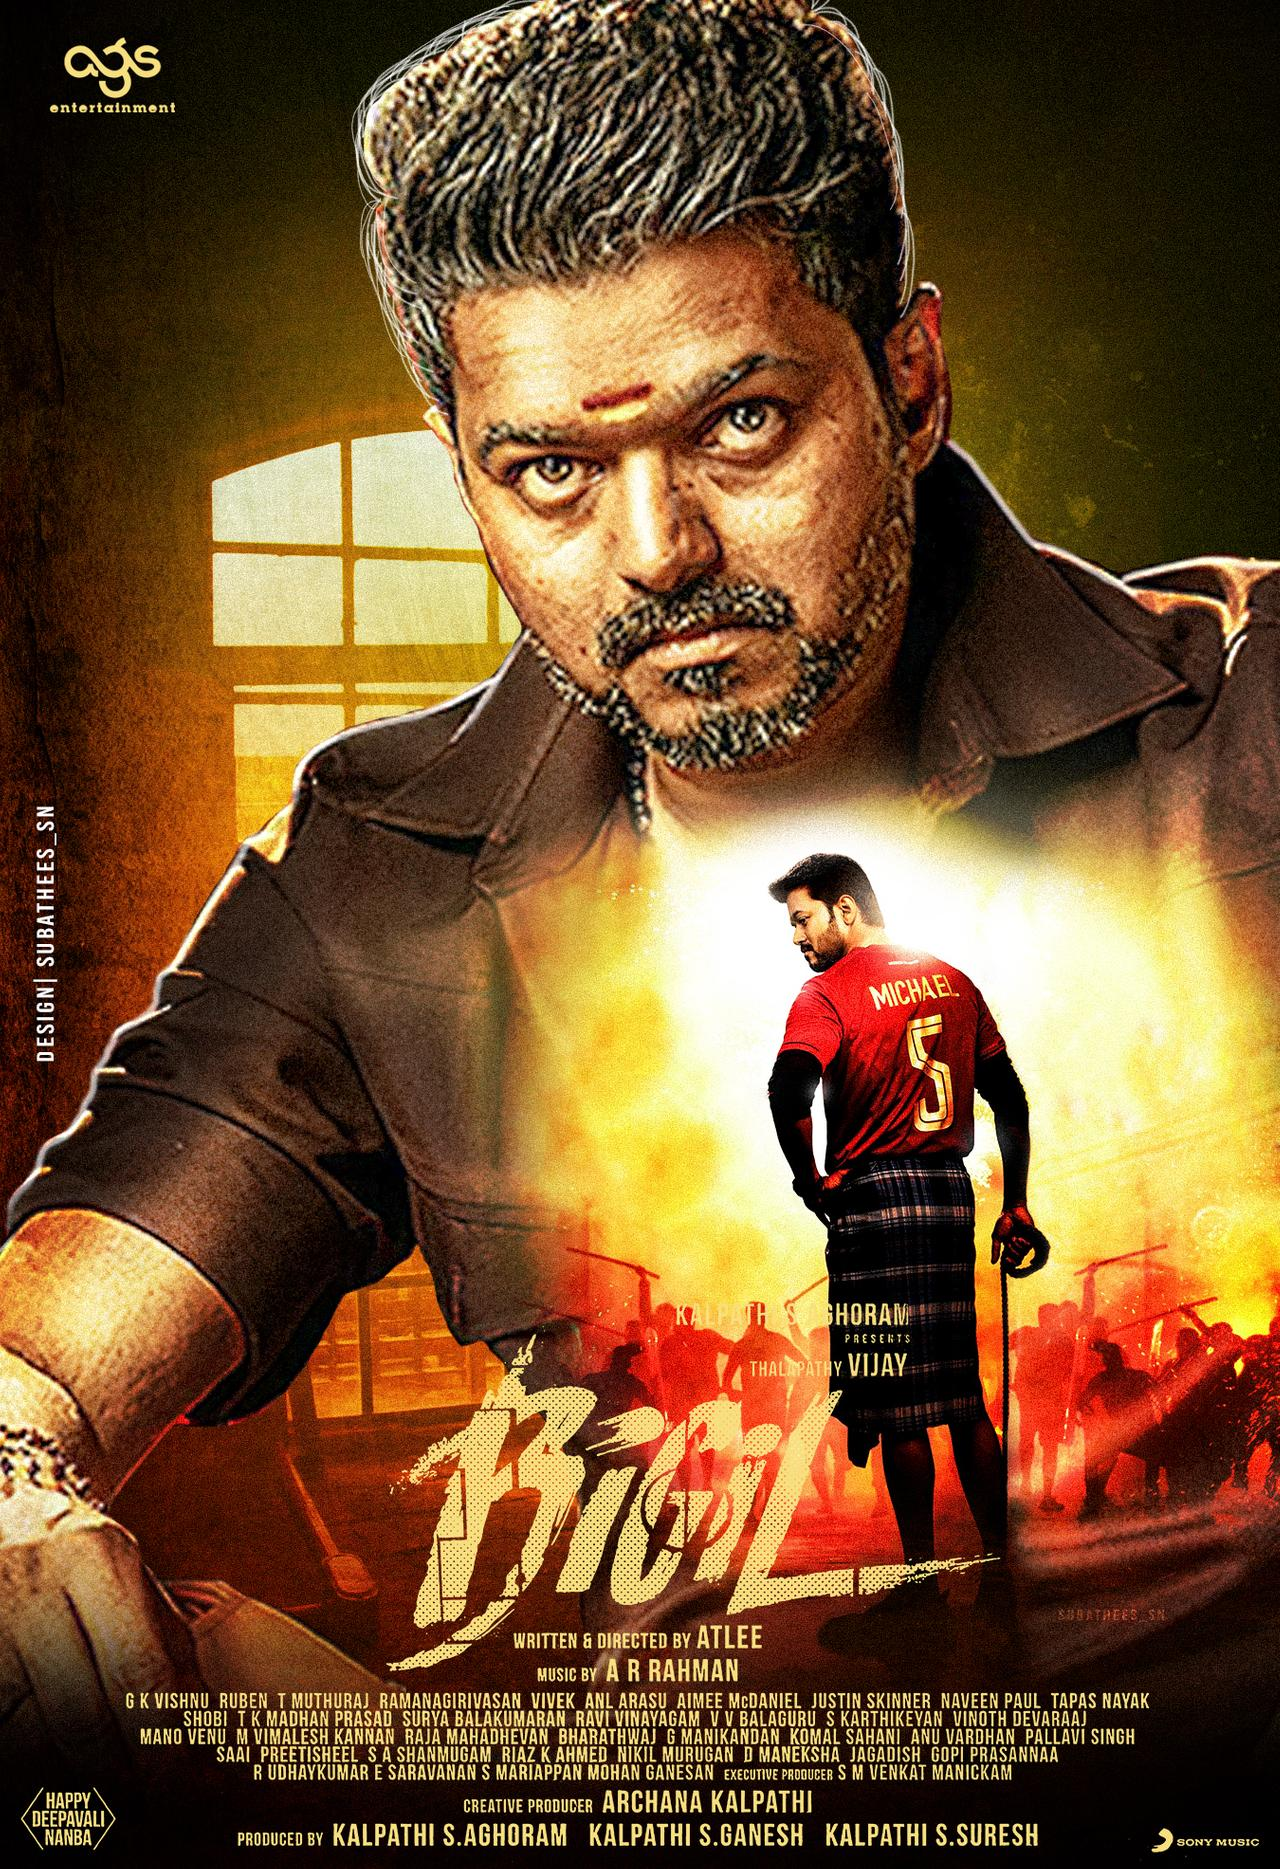 Bigil (2019) Tamil Action Movie HDRip DRR x264 AAC